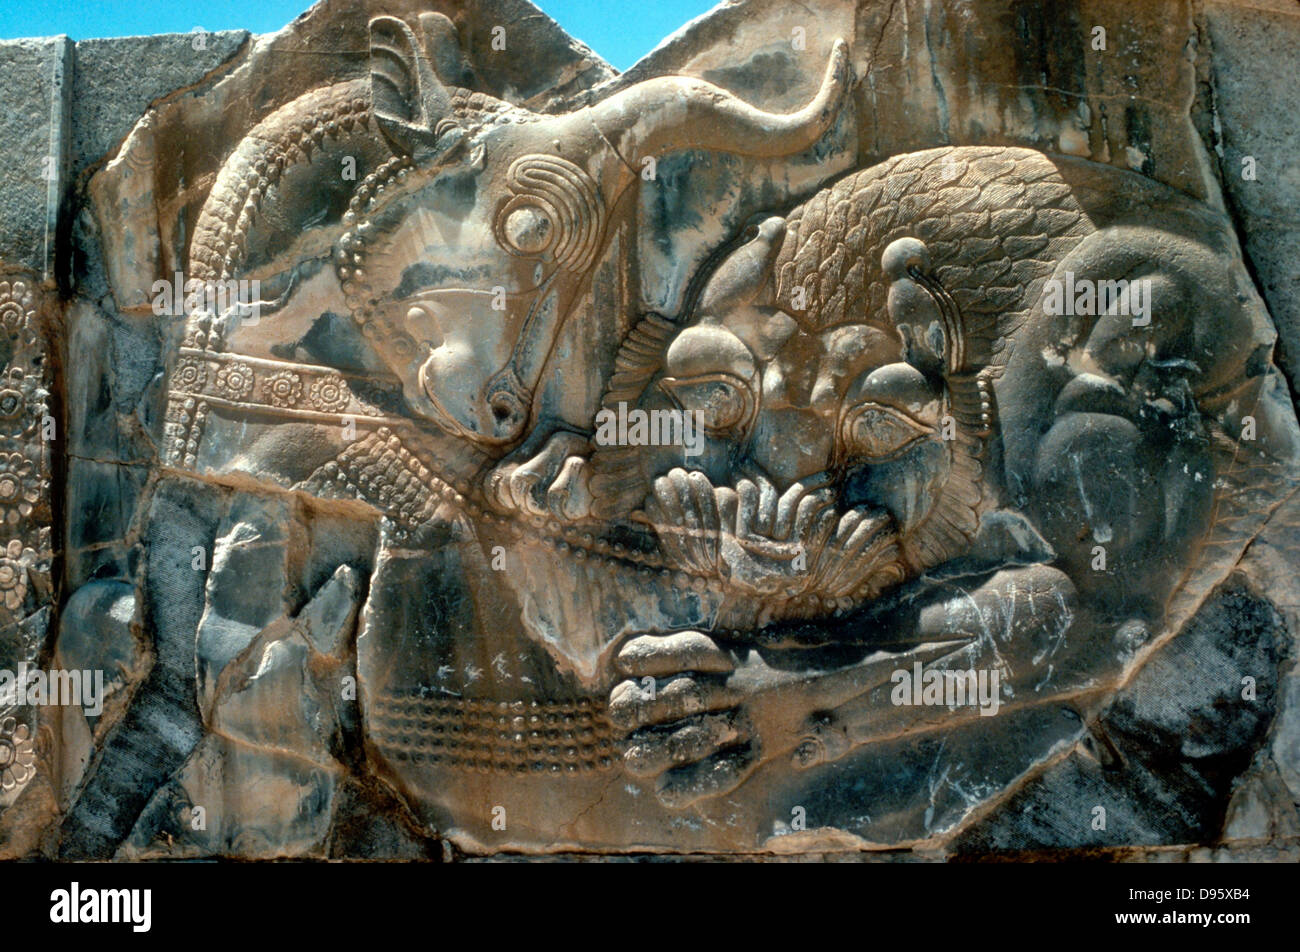 Bull and lion: Detail of carving on N wing of E stairway at palace of Persian king Xerxes I (486-465 BC) at Persepolis. - Stock Image